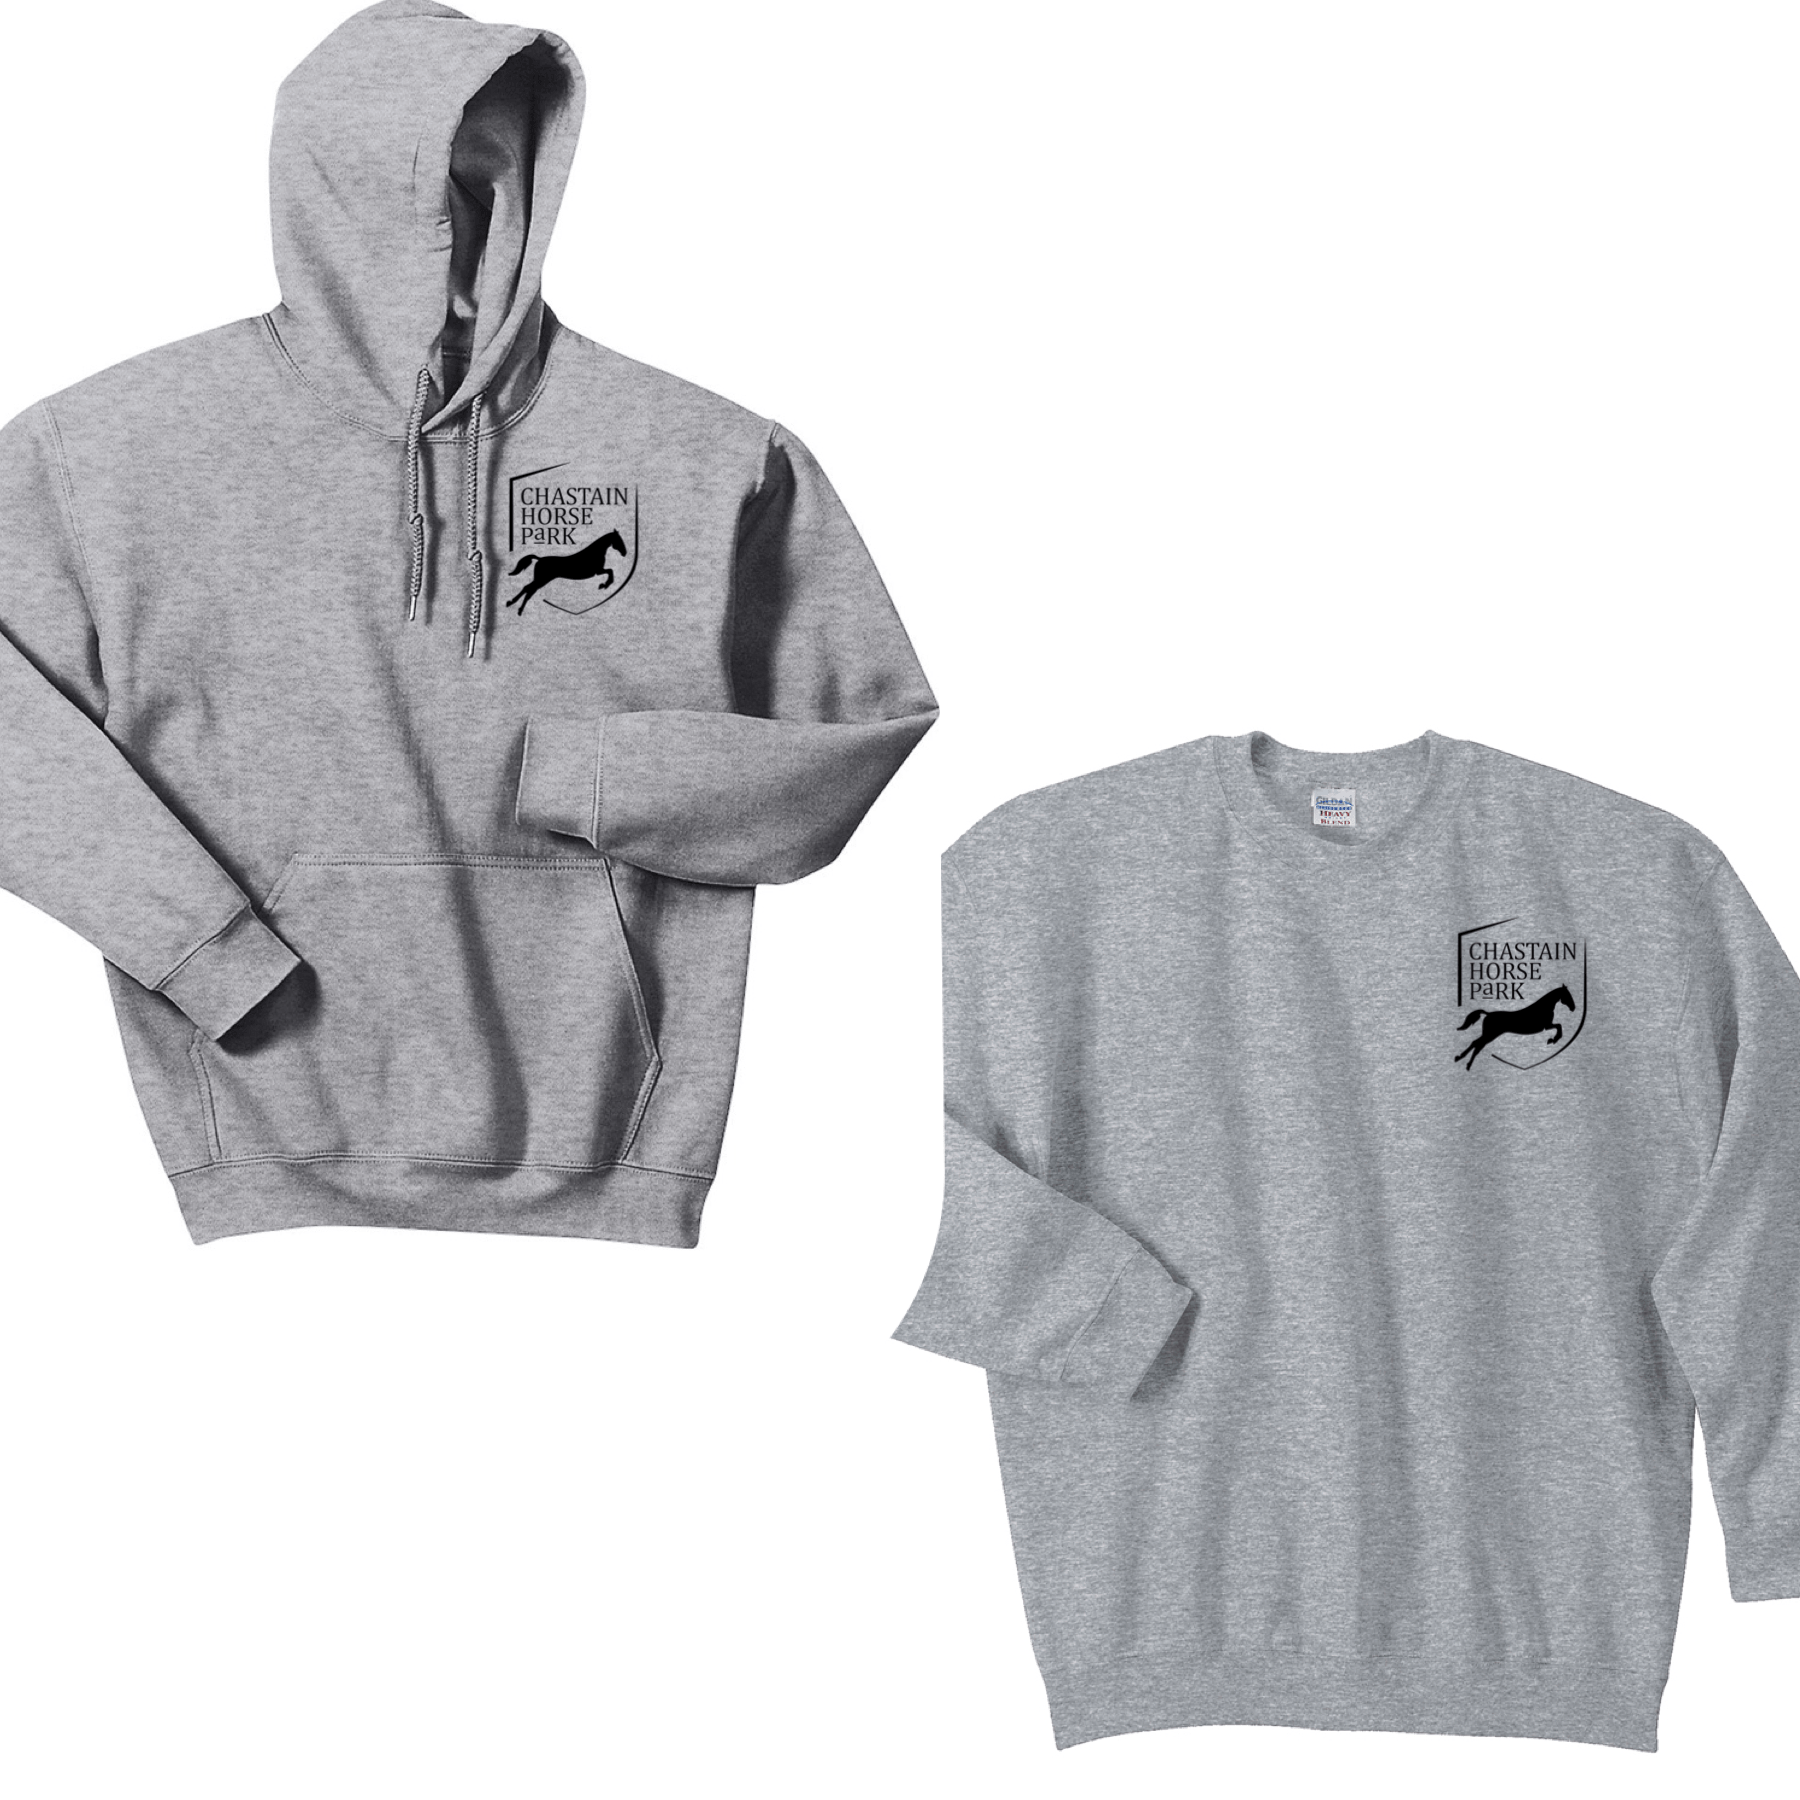 Equestrian Team Apparel Custom Team Hats Chastain Horse Park - Sweatshirts equestrian team apparel online tack store mobile tack store custom farm apparel custom show stable clothing equestrian lifestyle horse show clothing riding clothes horses equestrian tack store